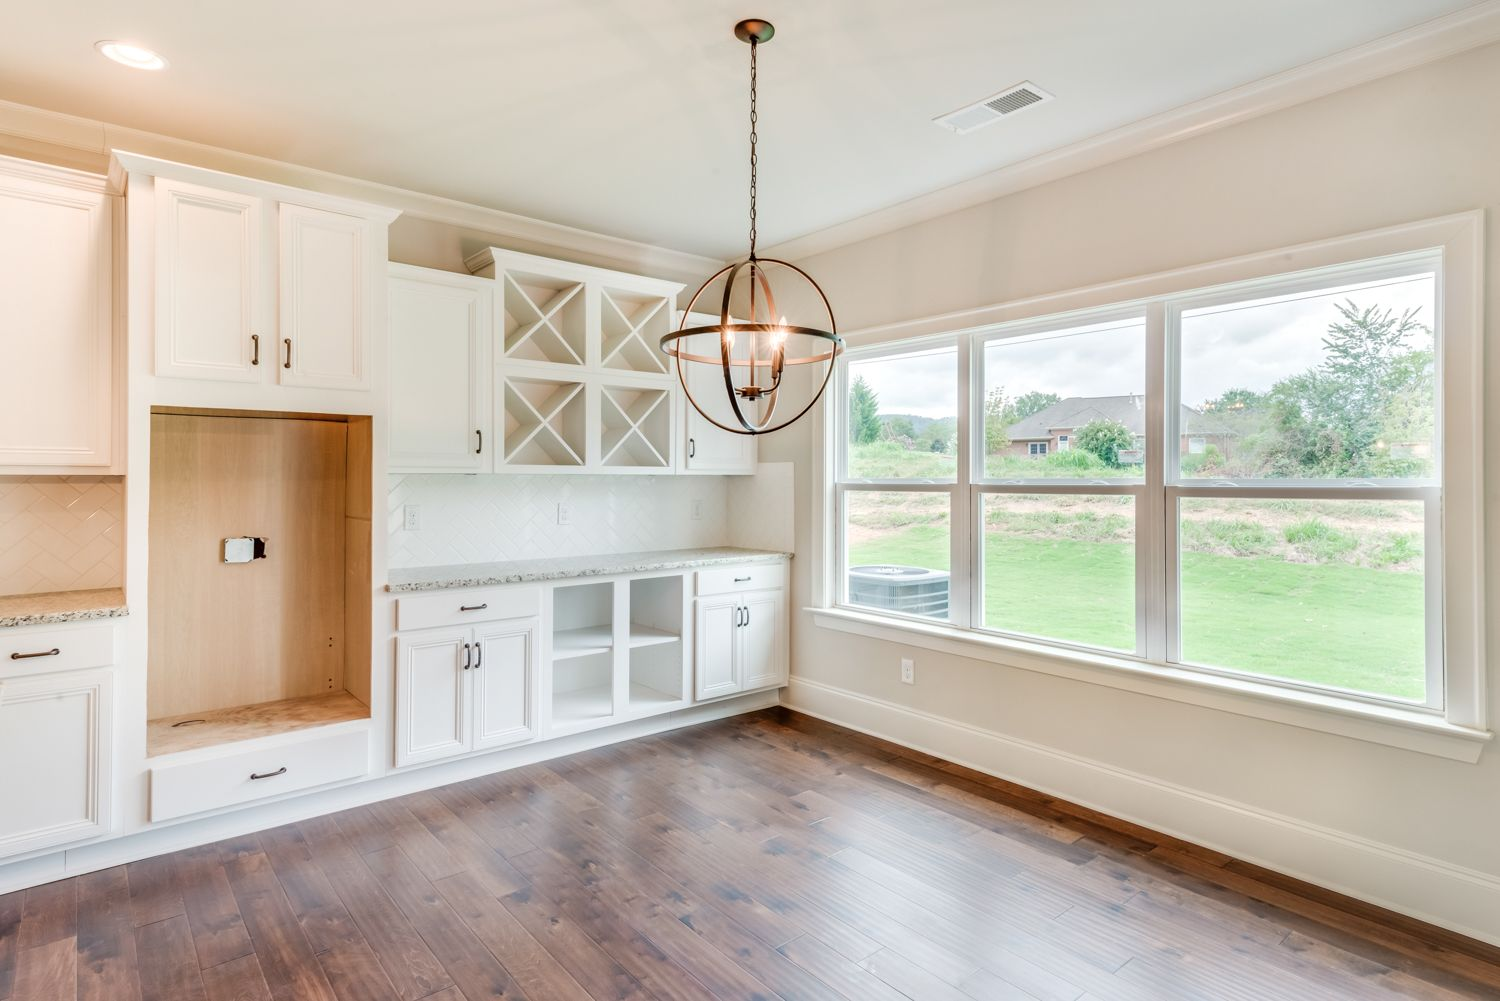 This Kitchen Is Huge With A Cabinet Extension Into The Breakfast Area This Creates A Great Serving Space That Can Act As A Wet B New Homes Home Breakfast Area